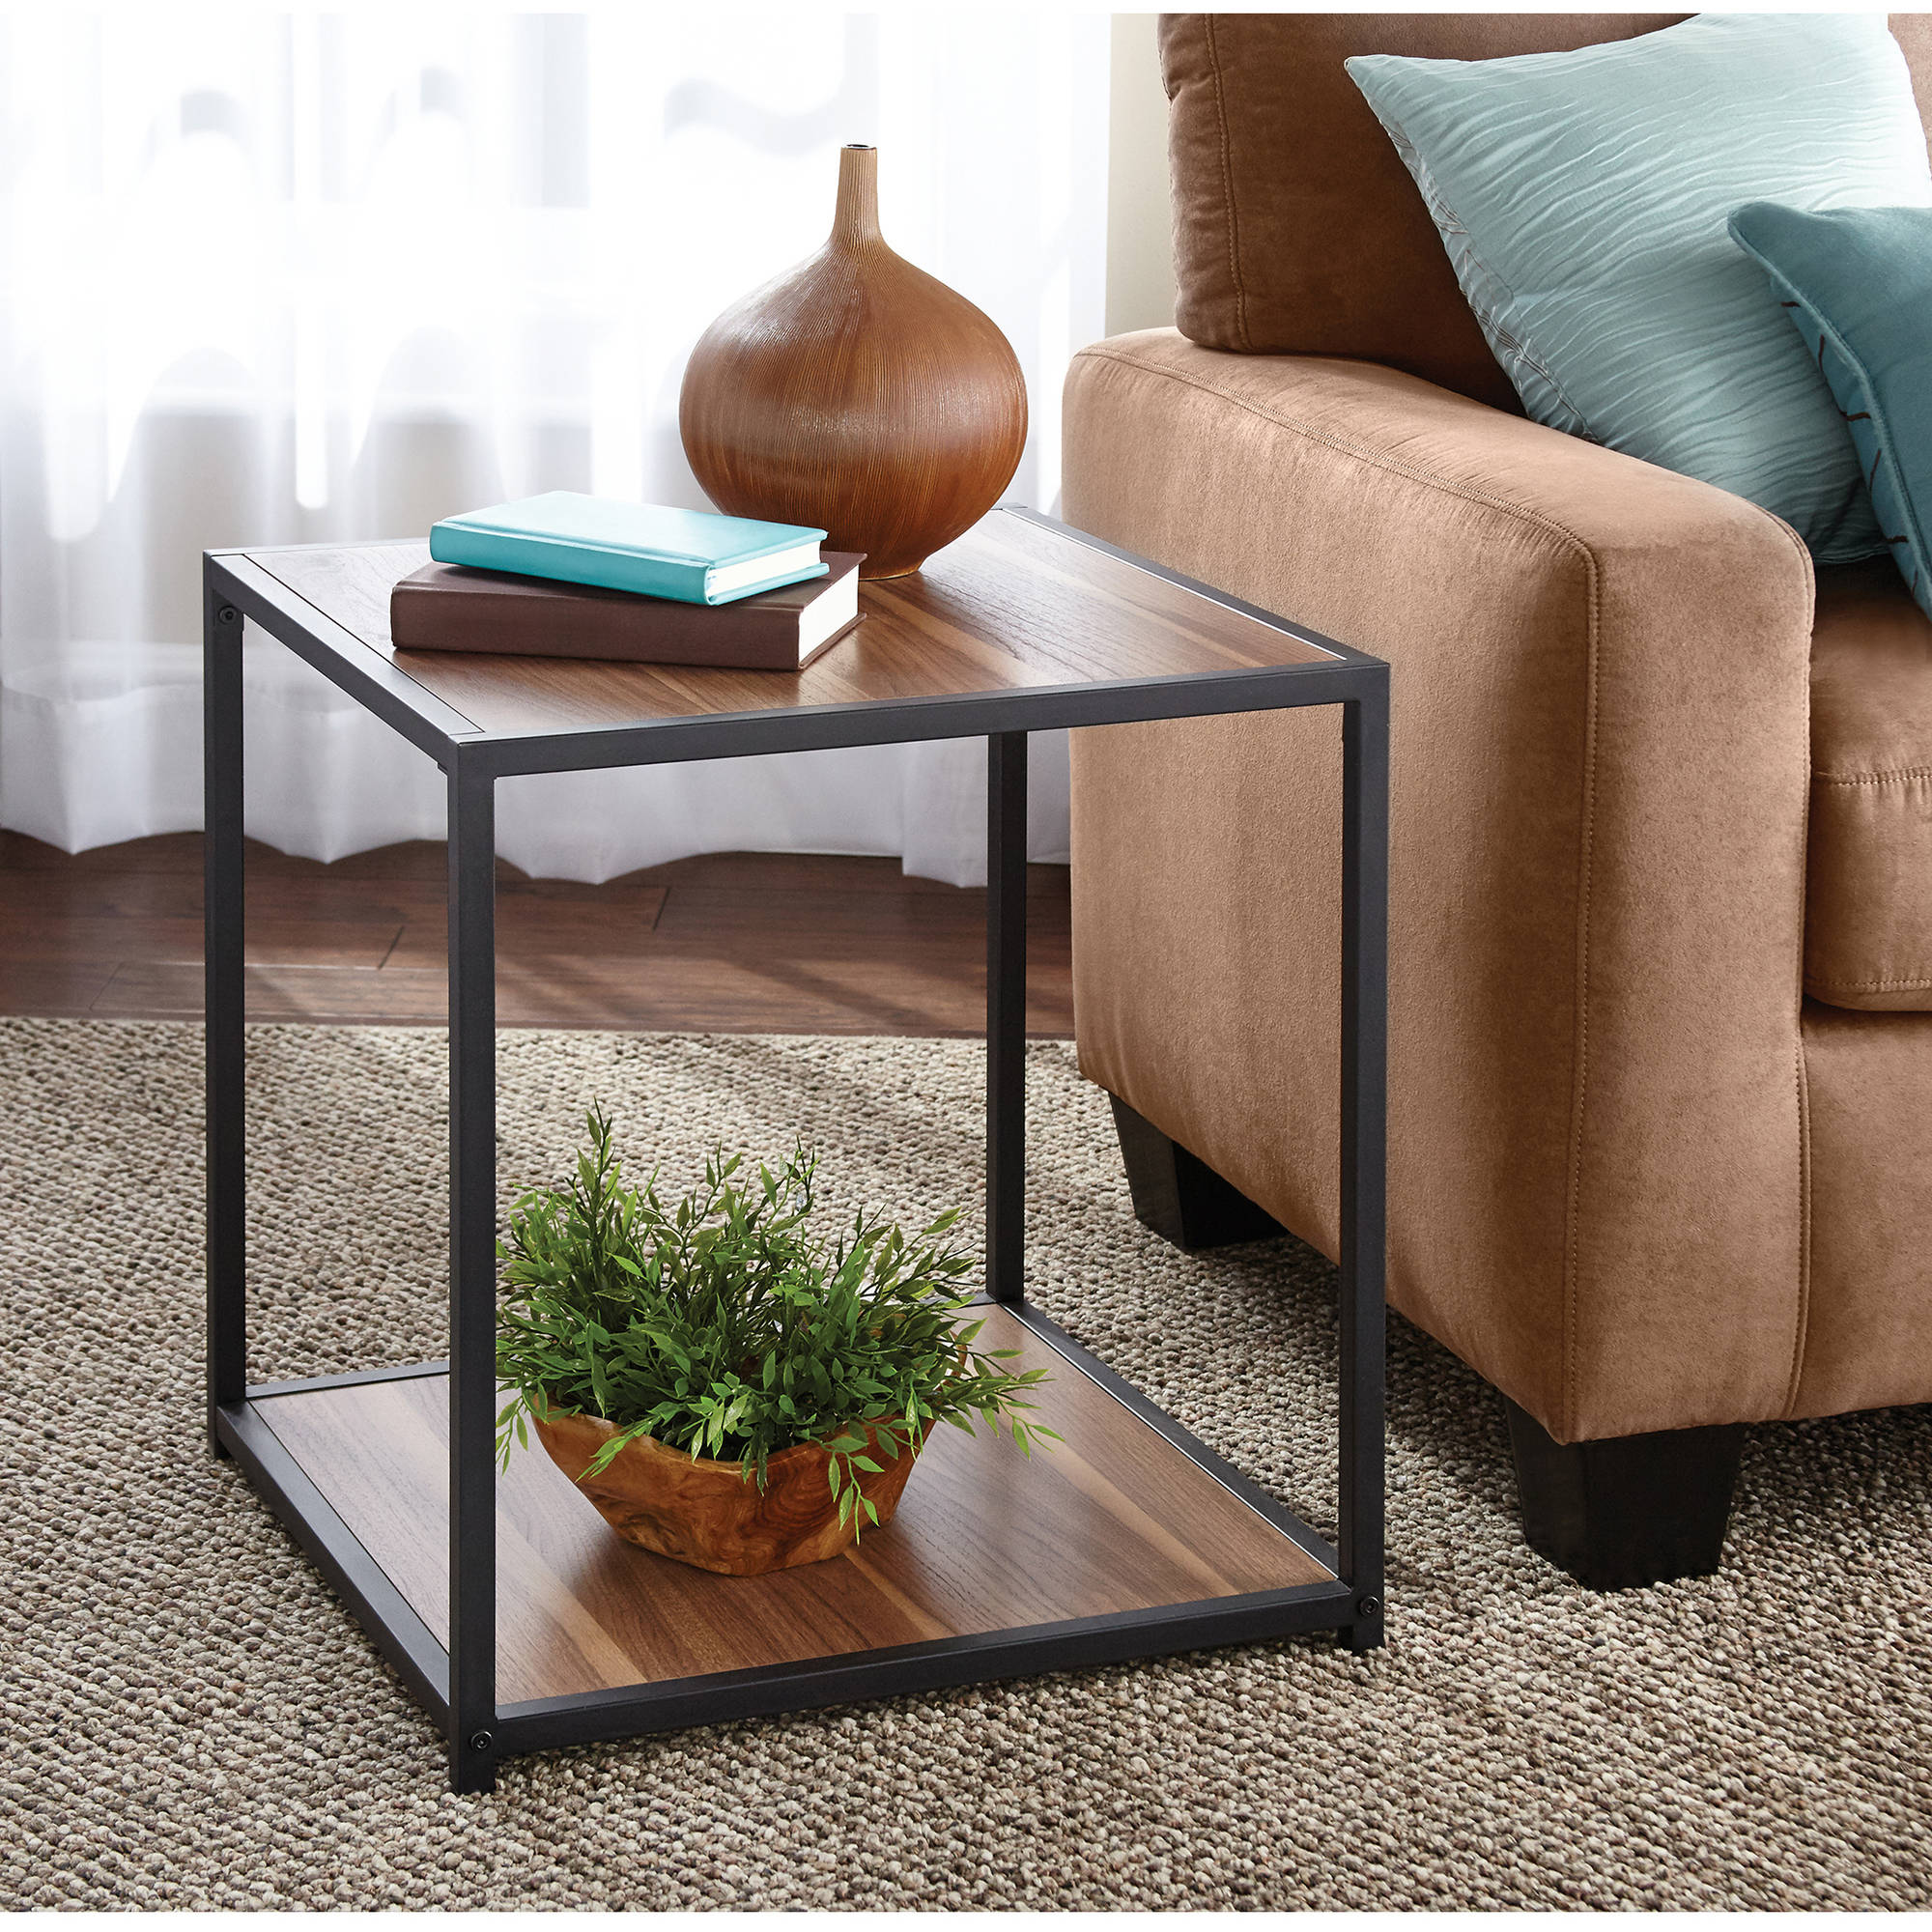 furniture beautiful collection coffee table rustic with wheels end tables target patio skinny side console lifting wood lift teal accent kidney modern hallway mirrored dining and